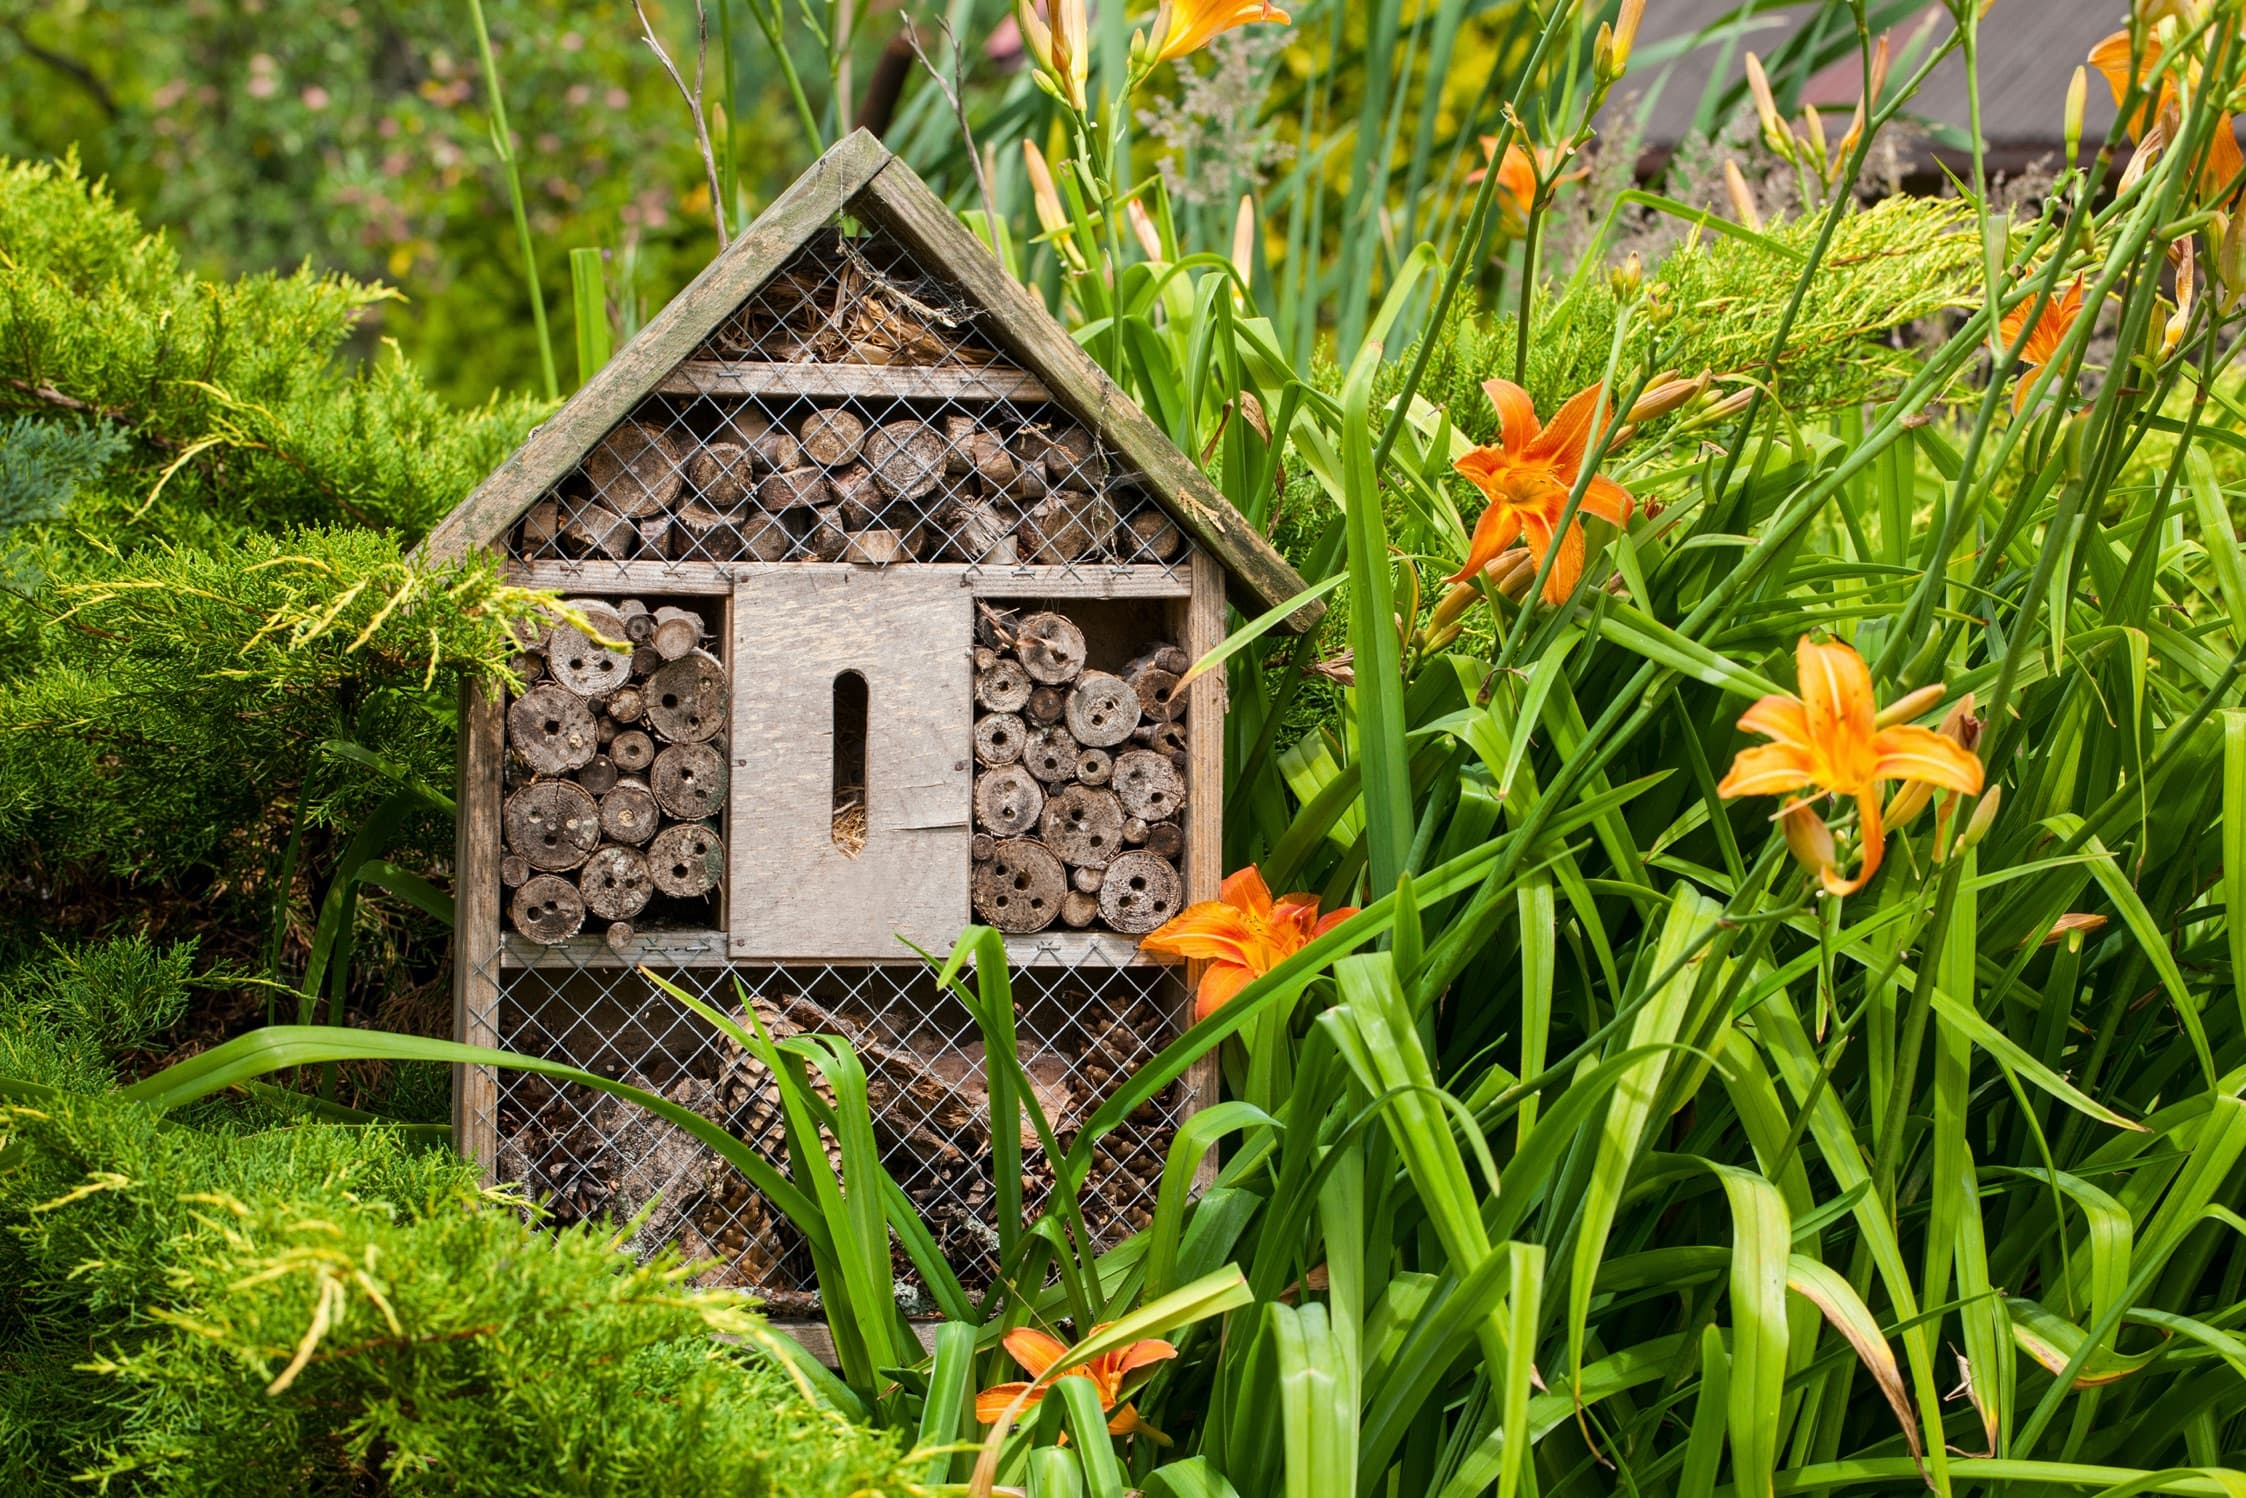 Gardeners Supply Company Wooden Insect Hotel with Stake